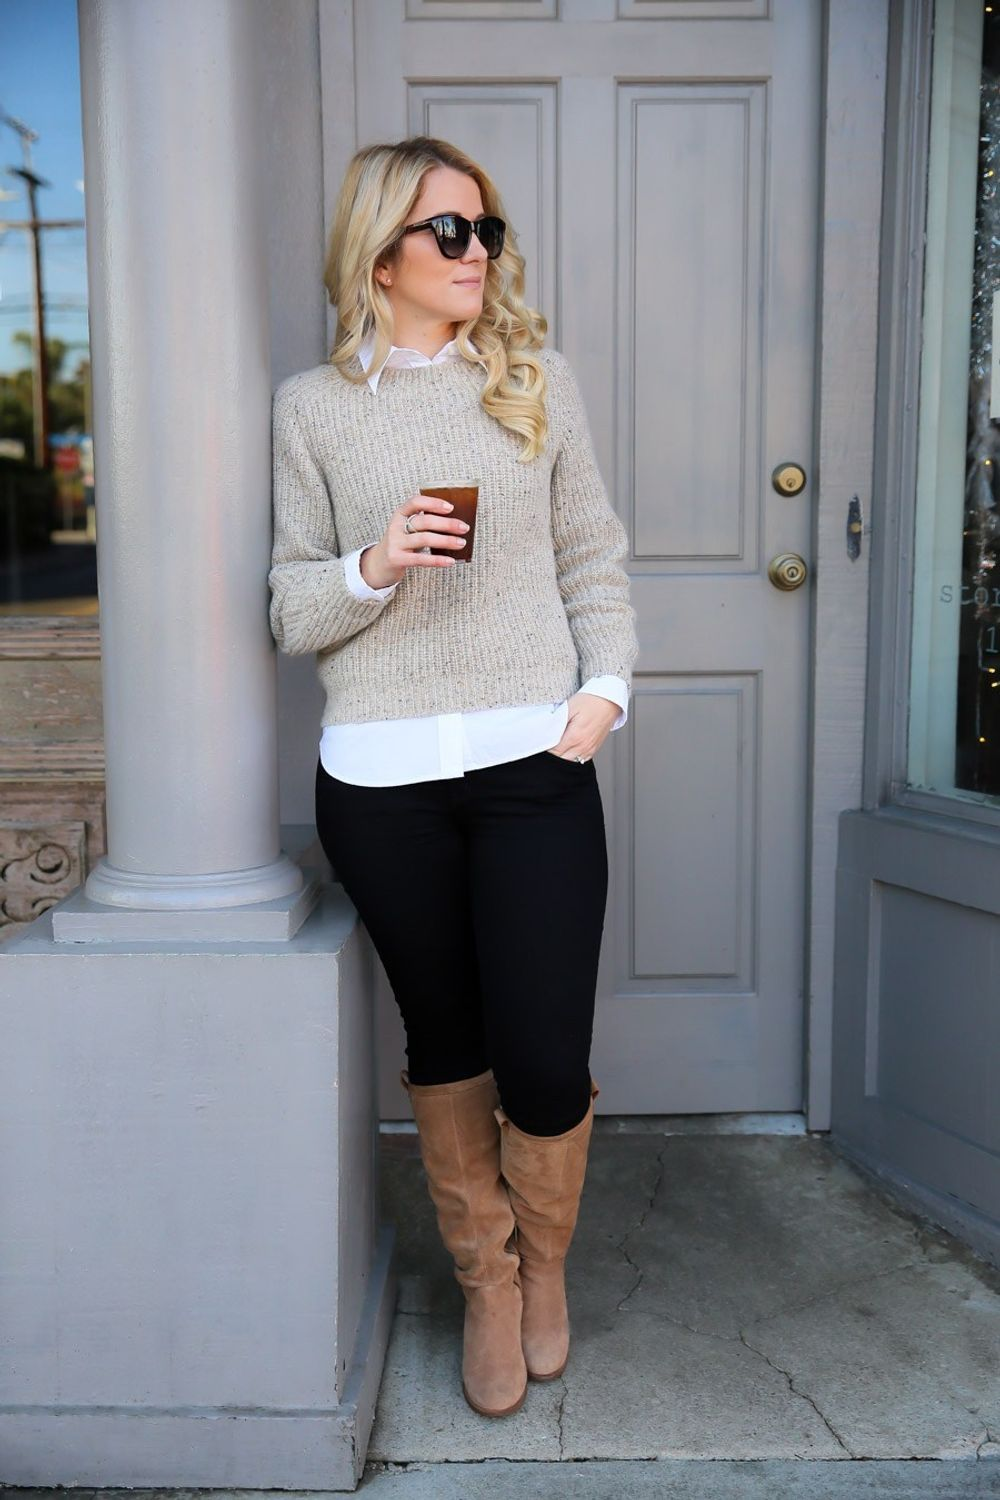 Mix It Up With Layers